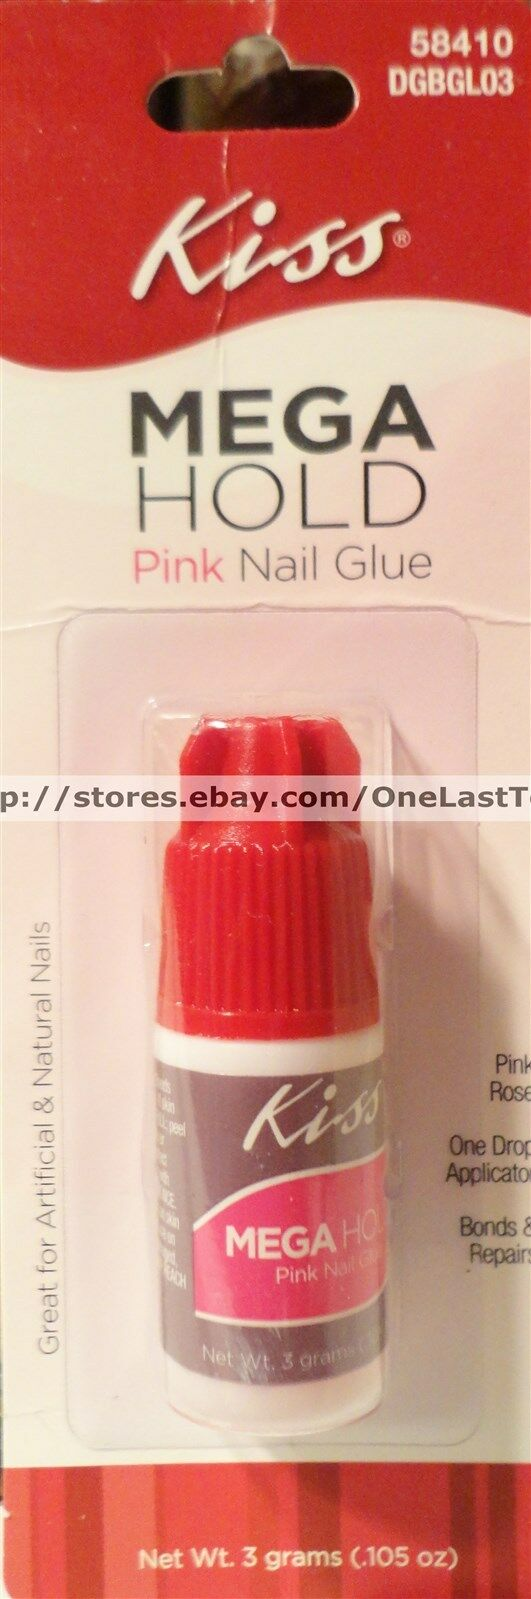 Kiss Mega Hold Pink Nail Glue Great for Artificial & Natural Nails 58410